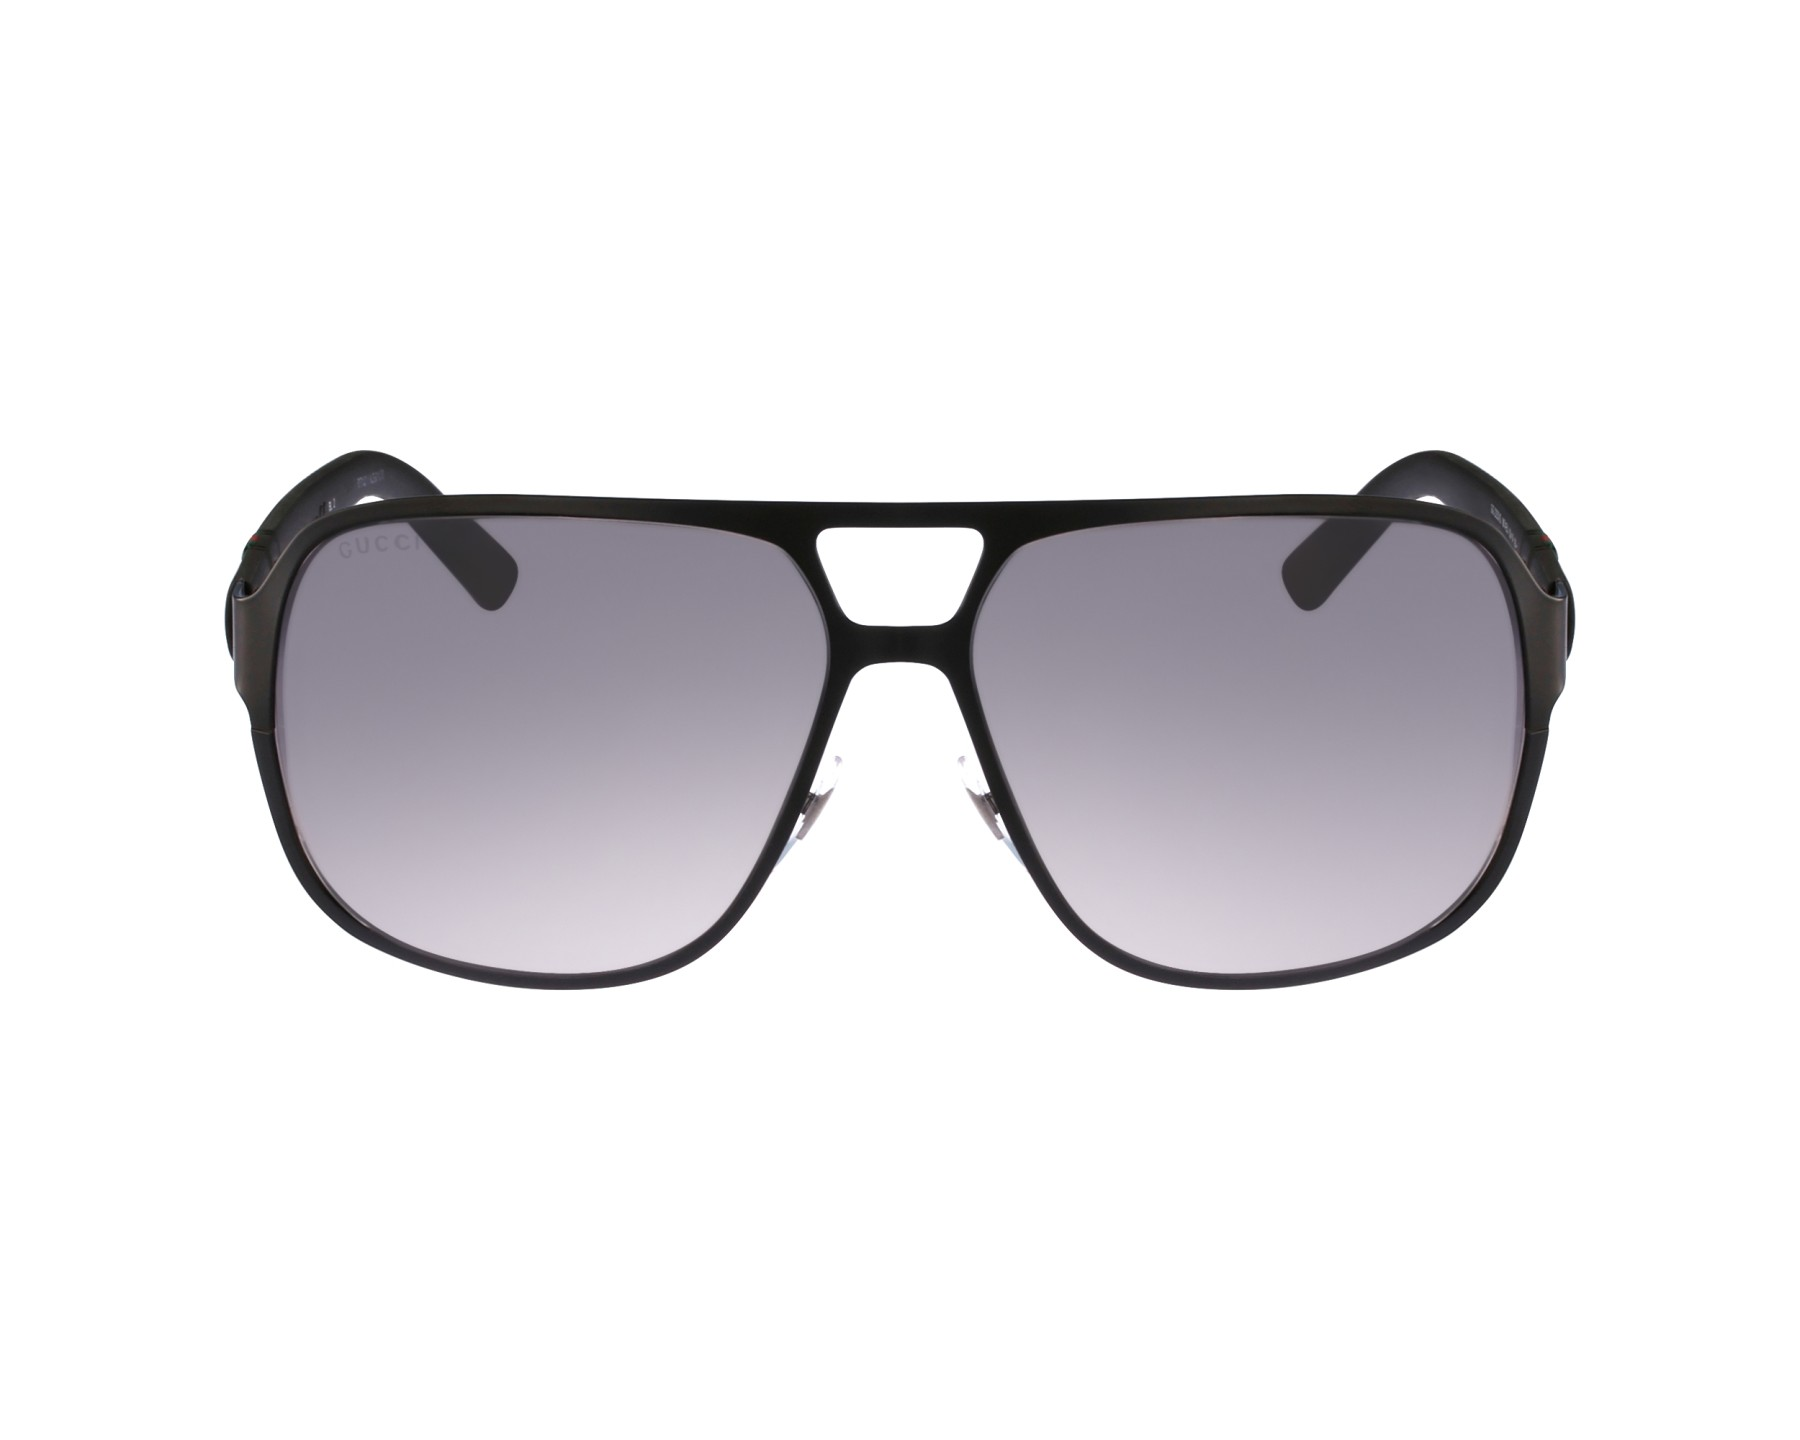 gucci 2253. gucci has been added to your cart 2253